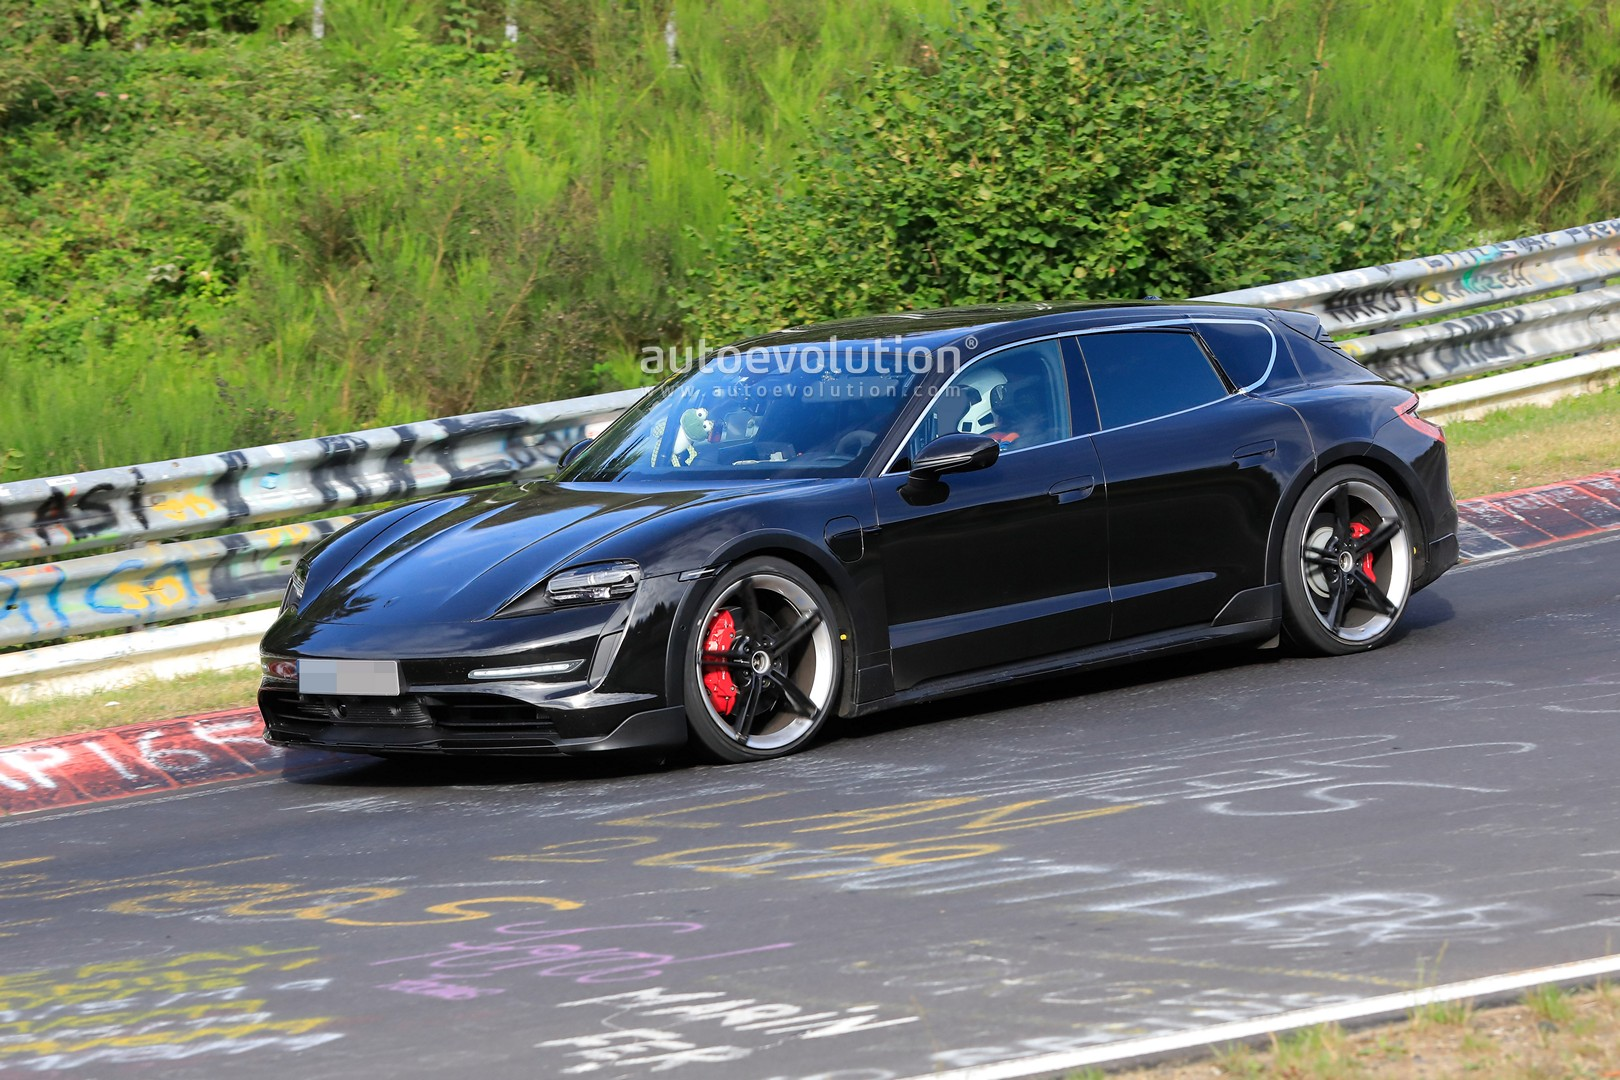 2020 - [Porsche] Taycan Sport Turismo - Page 2 Porsche-taycan-cross-turismo-spied-testing-hard-at-the-nurburgring-147626_1